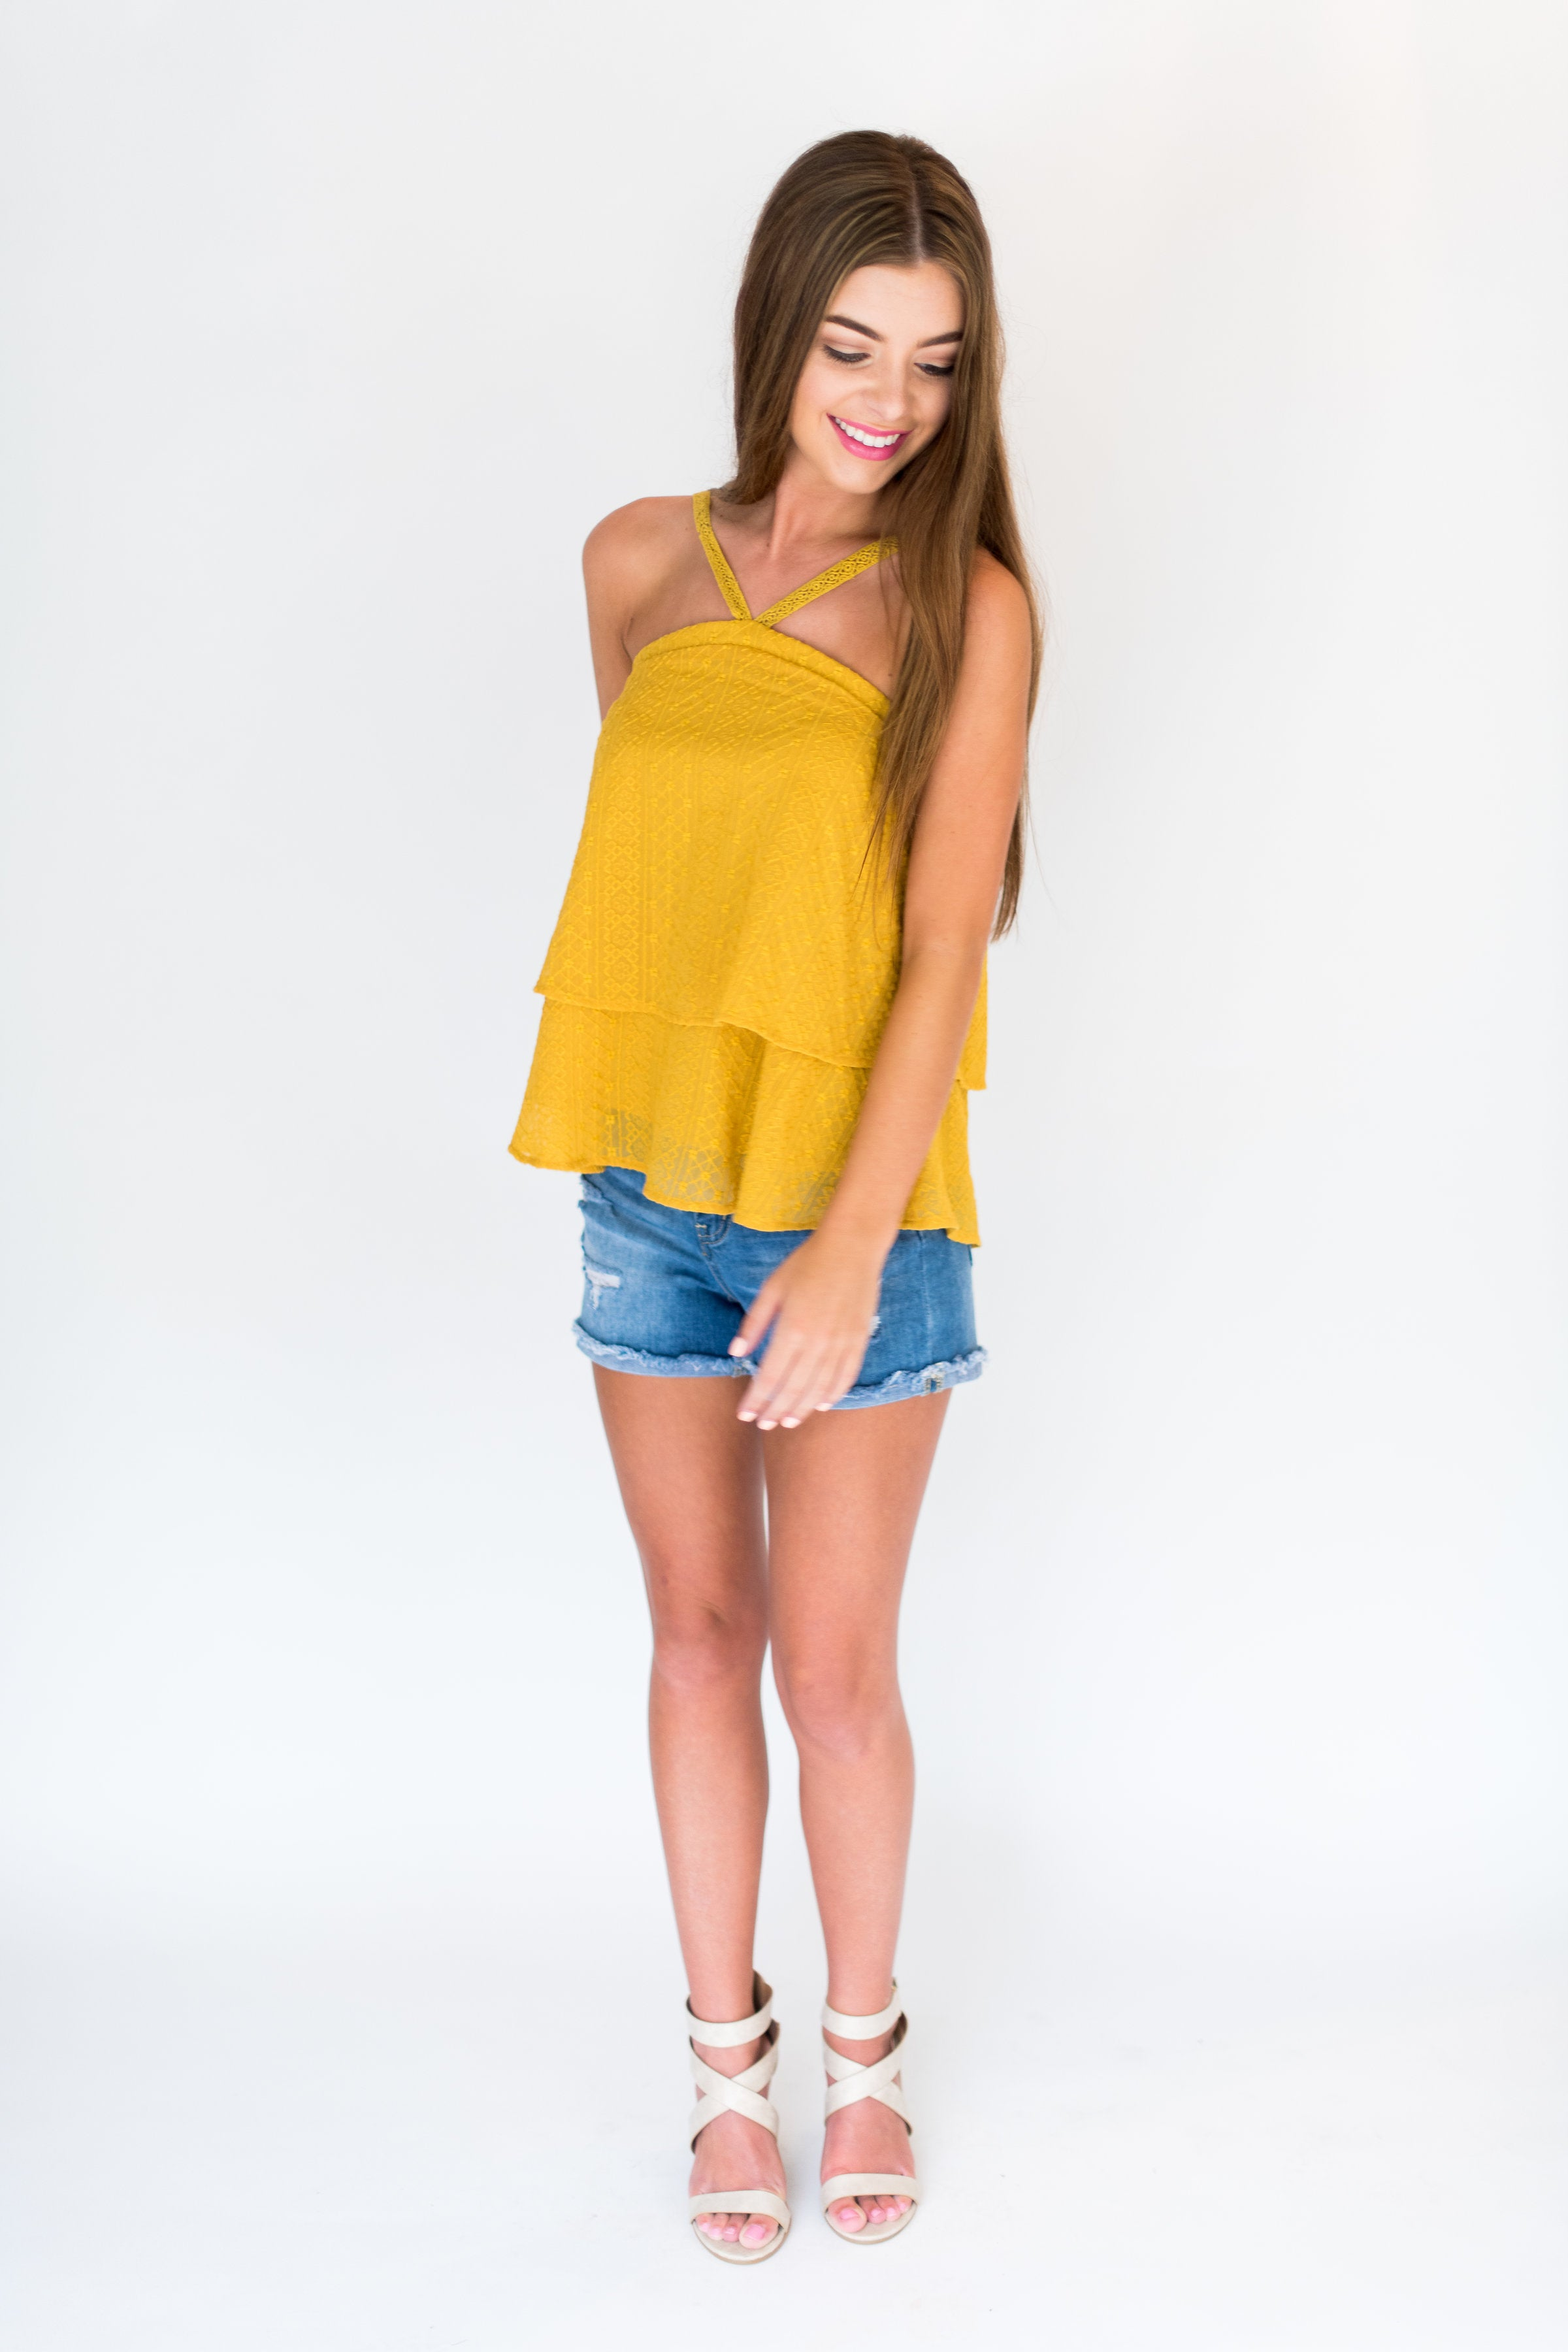 Meet Me in the Middle Embroidery Halter Neck Layered Top:  Mustard